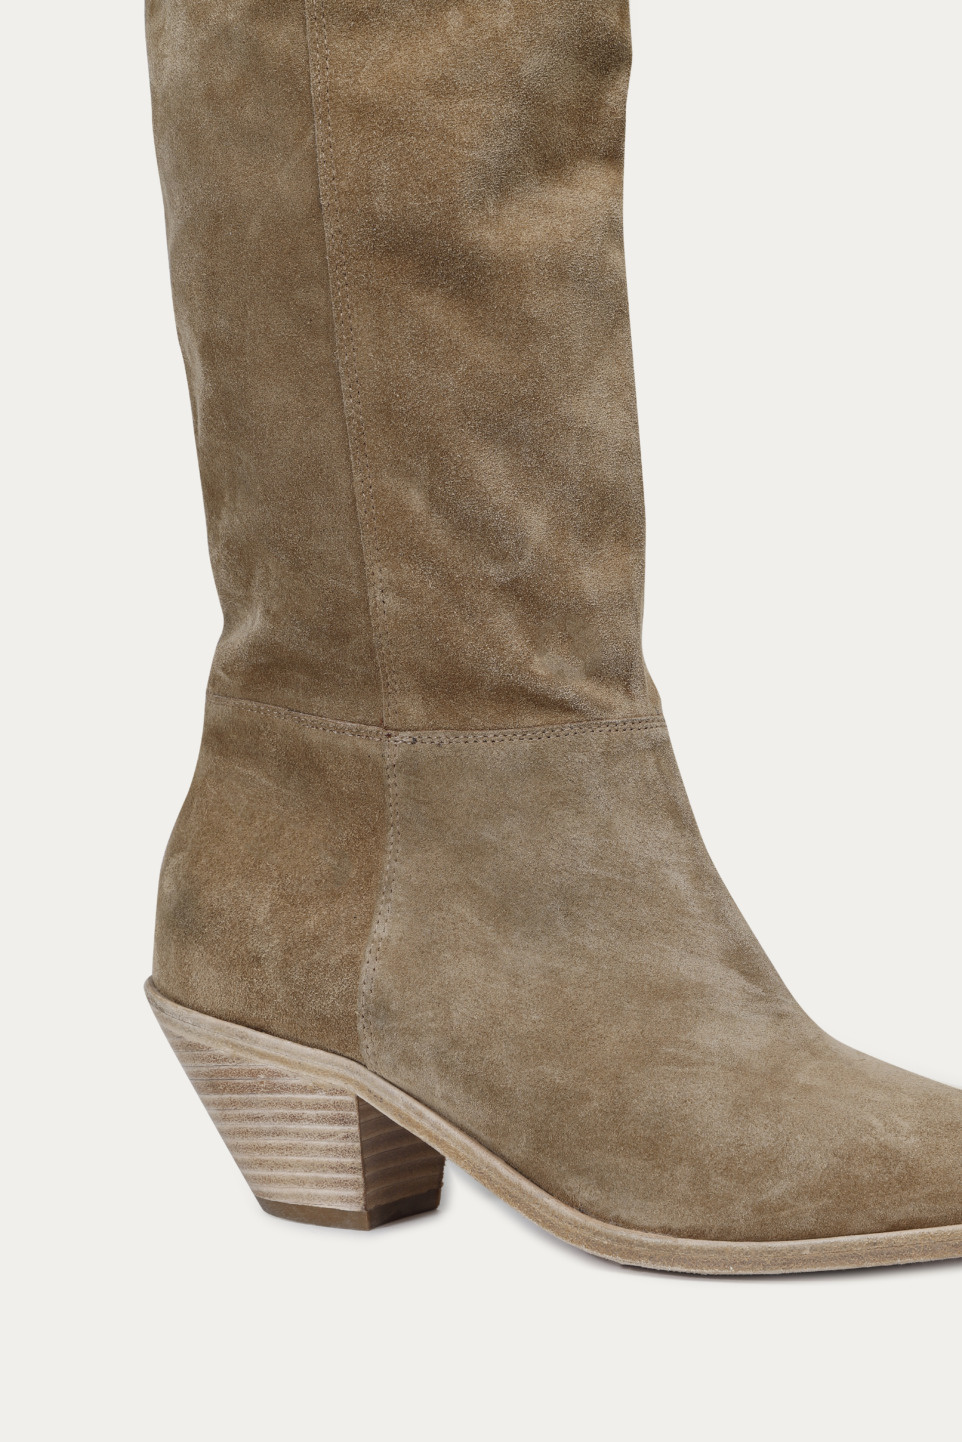 Cowby Boots - Raw Sable 37-5